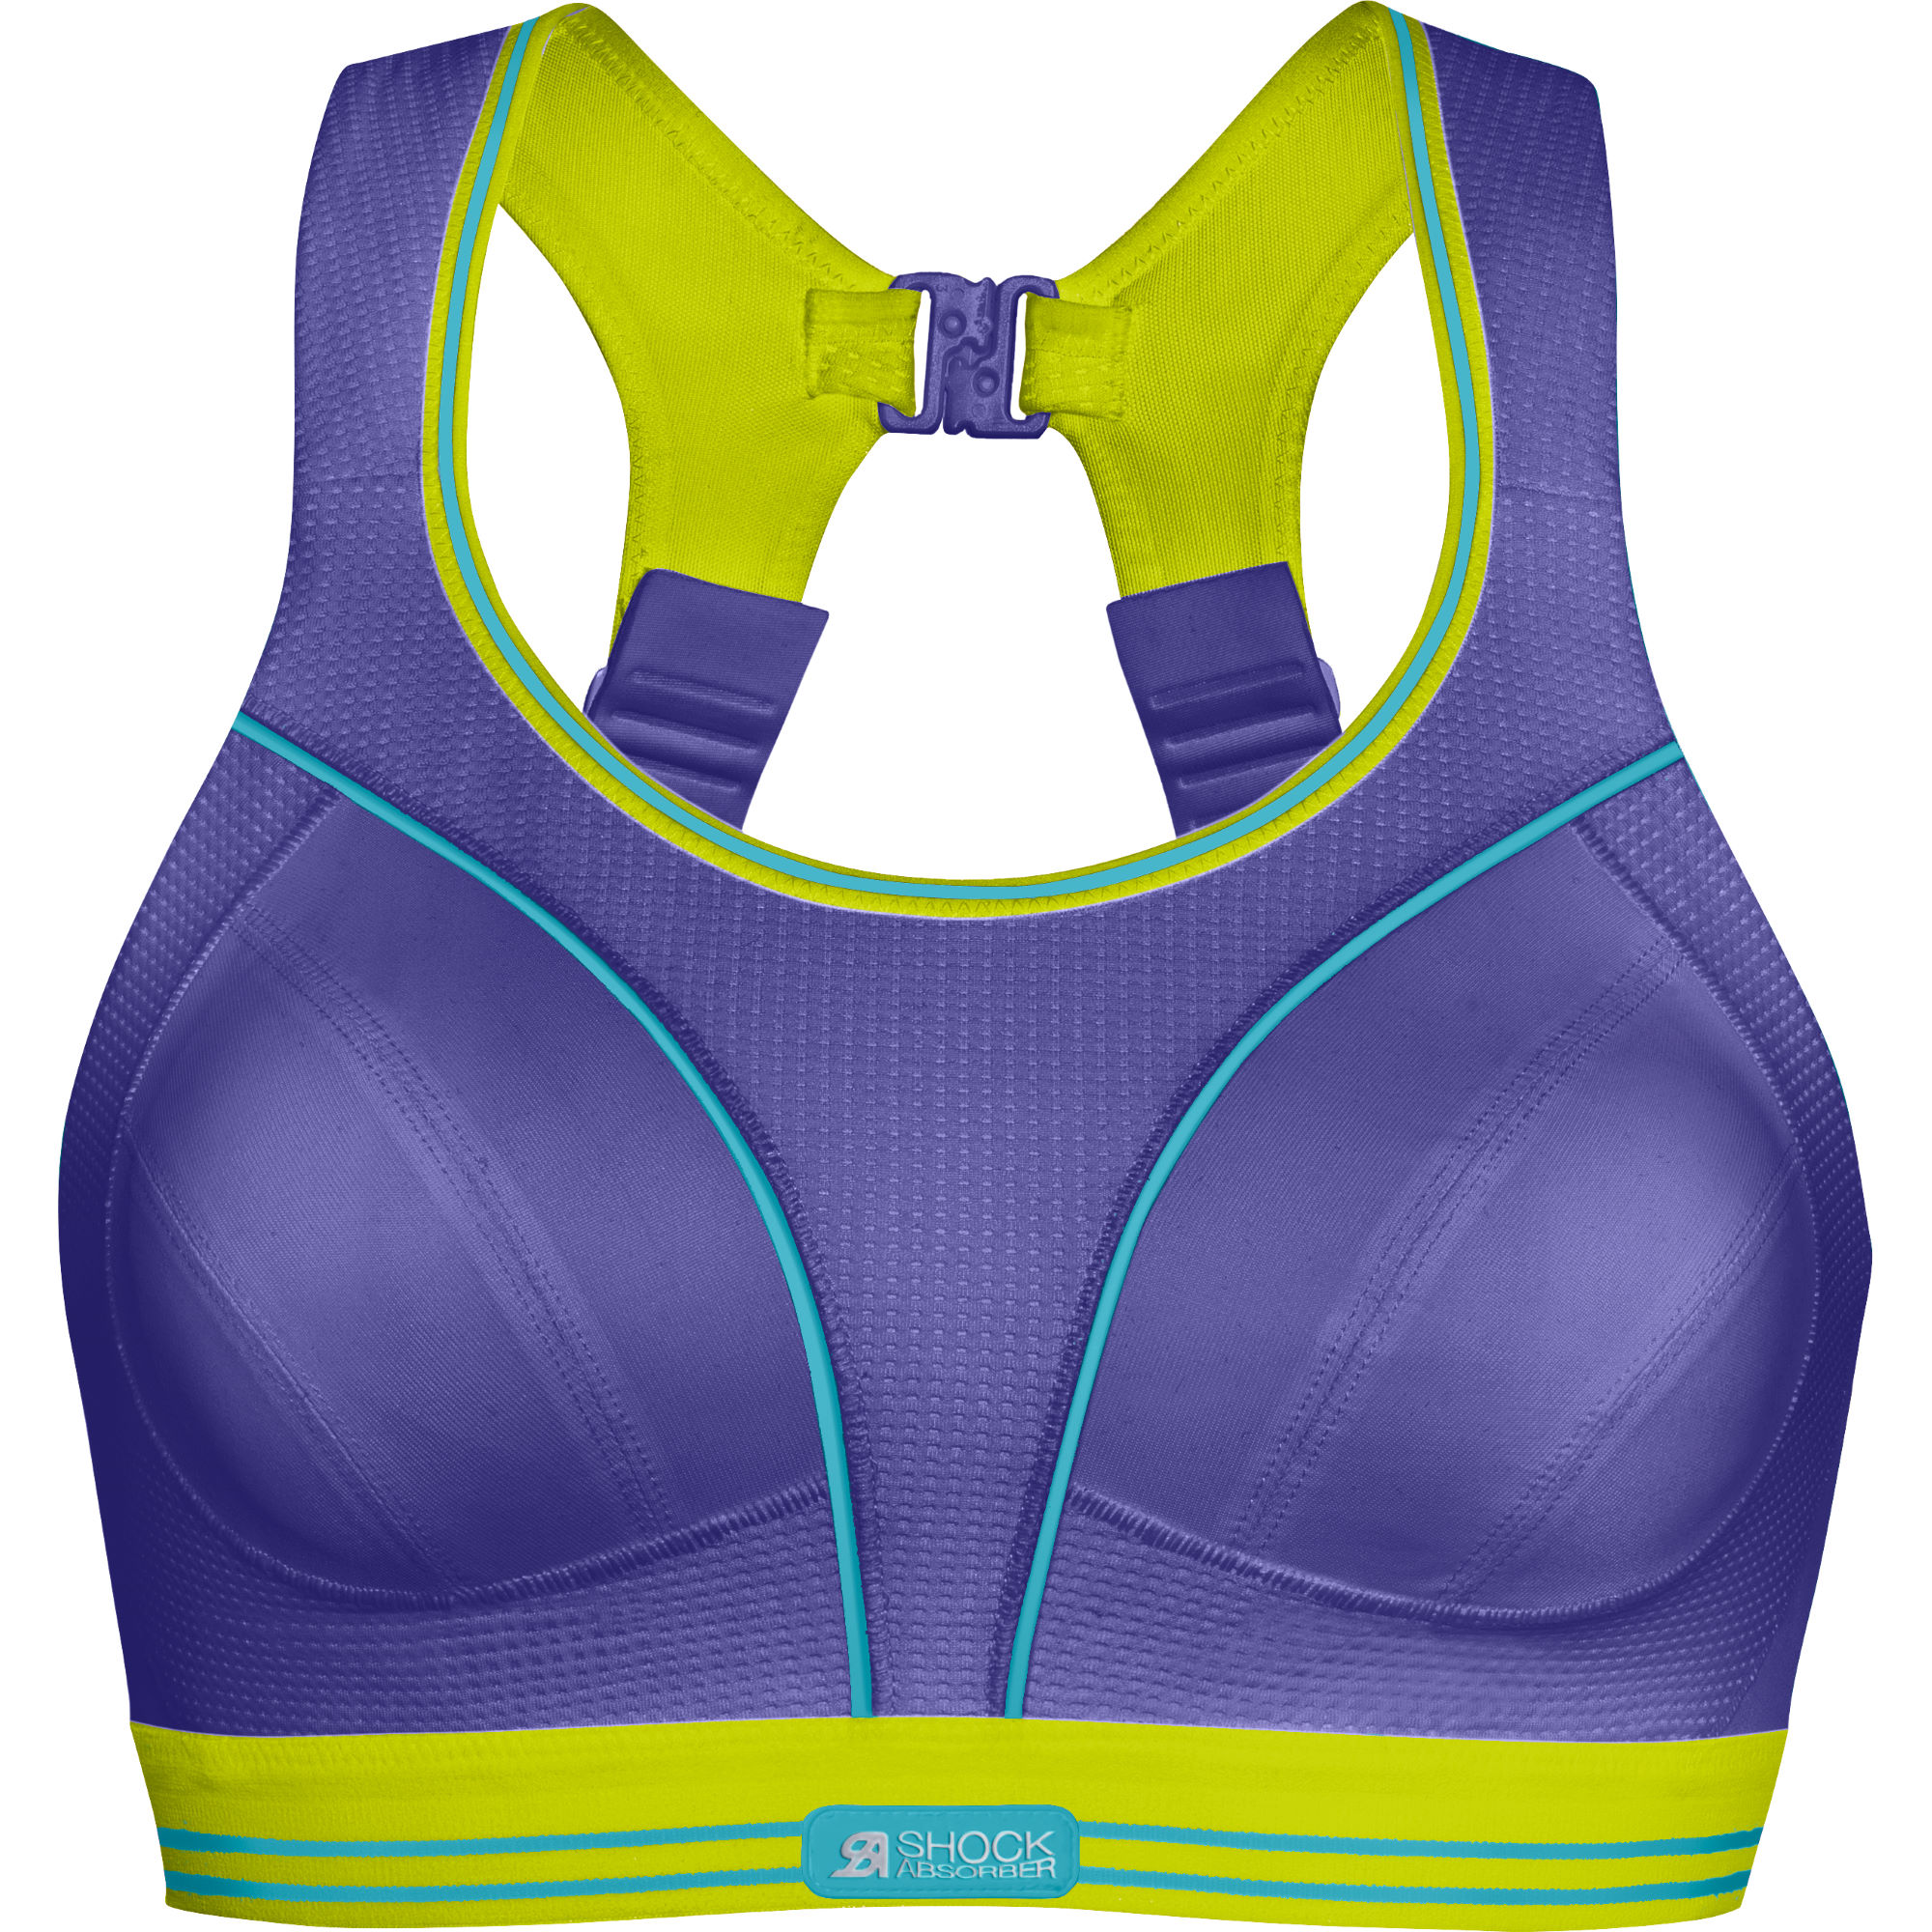 wiggle shock absorber ultimate run bra sports bras. Black Bedroom Furniture Sets. Home Design Ideas